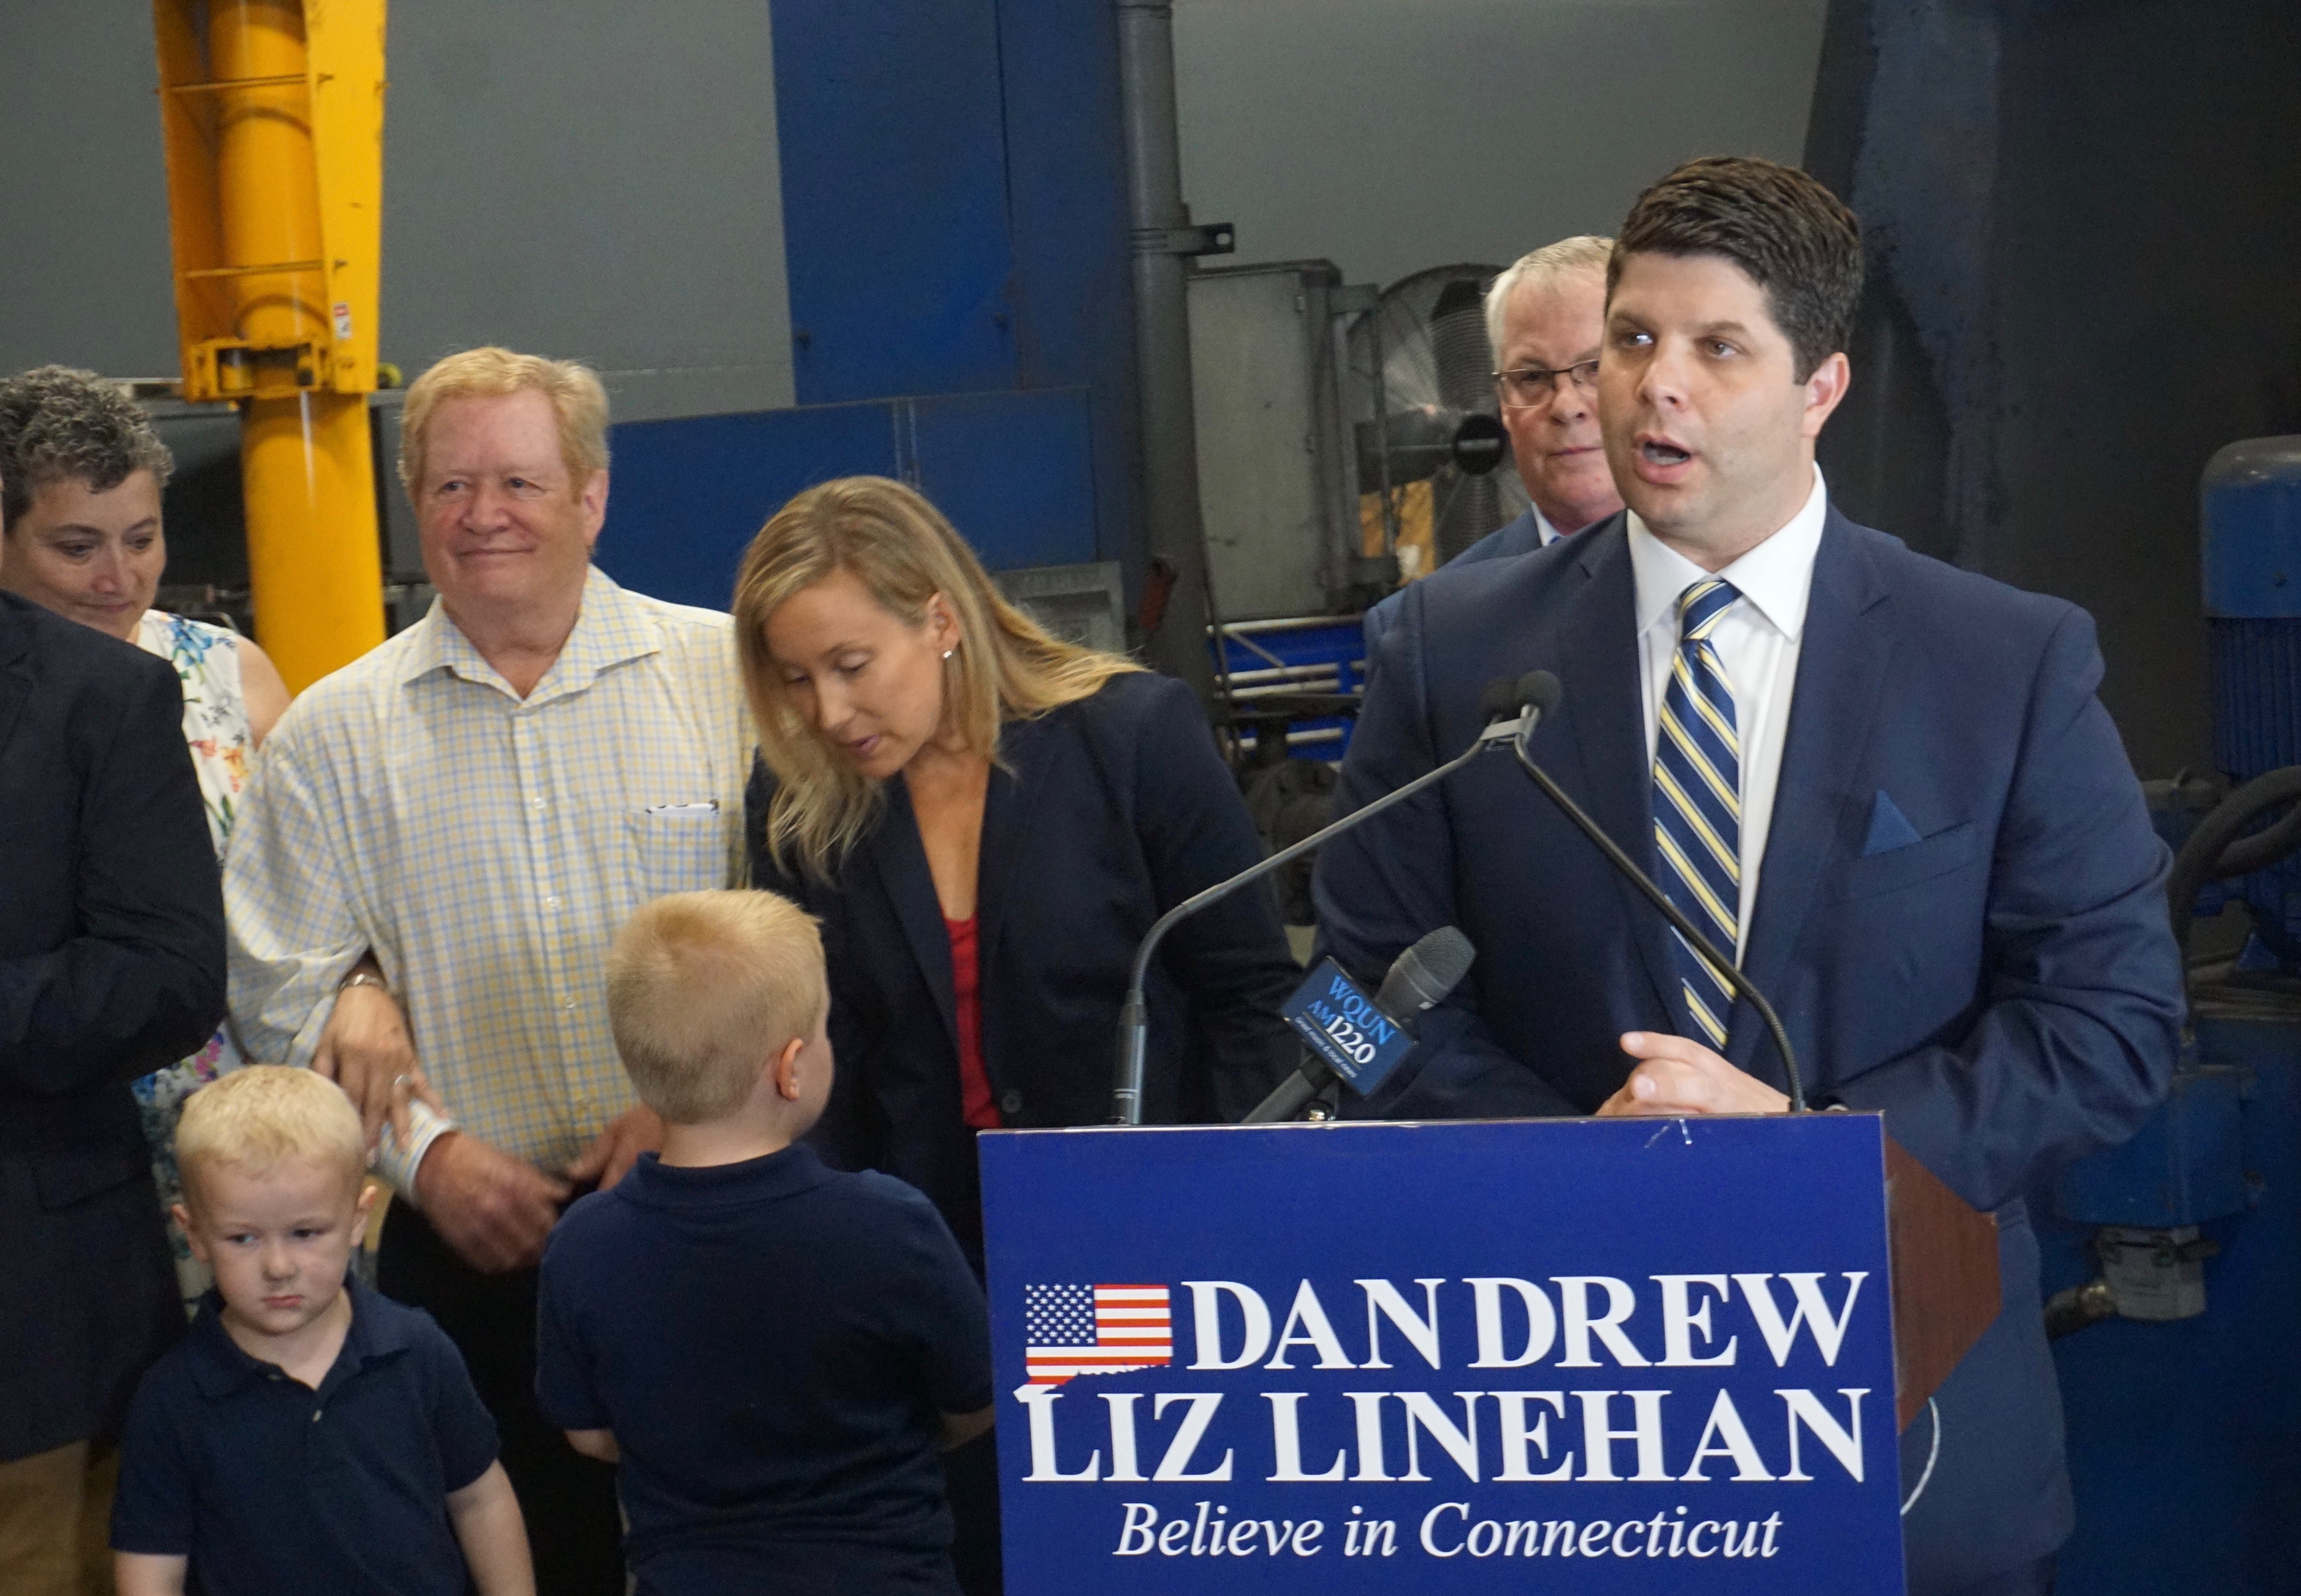 Drew, Linehan tack left in opening joint campaign